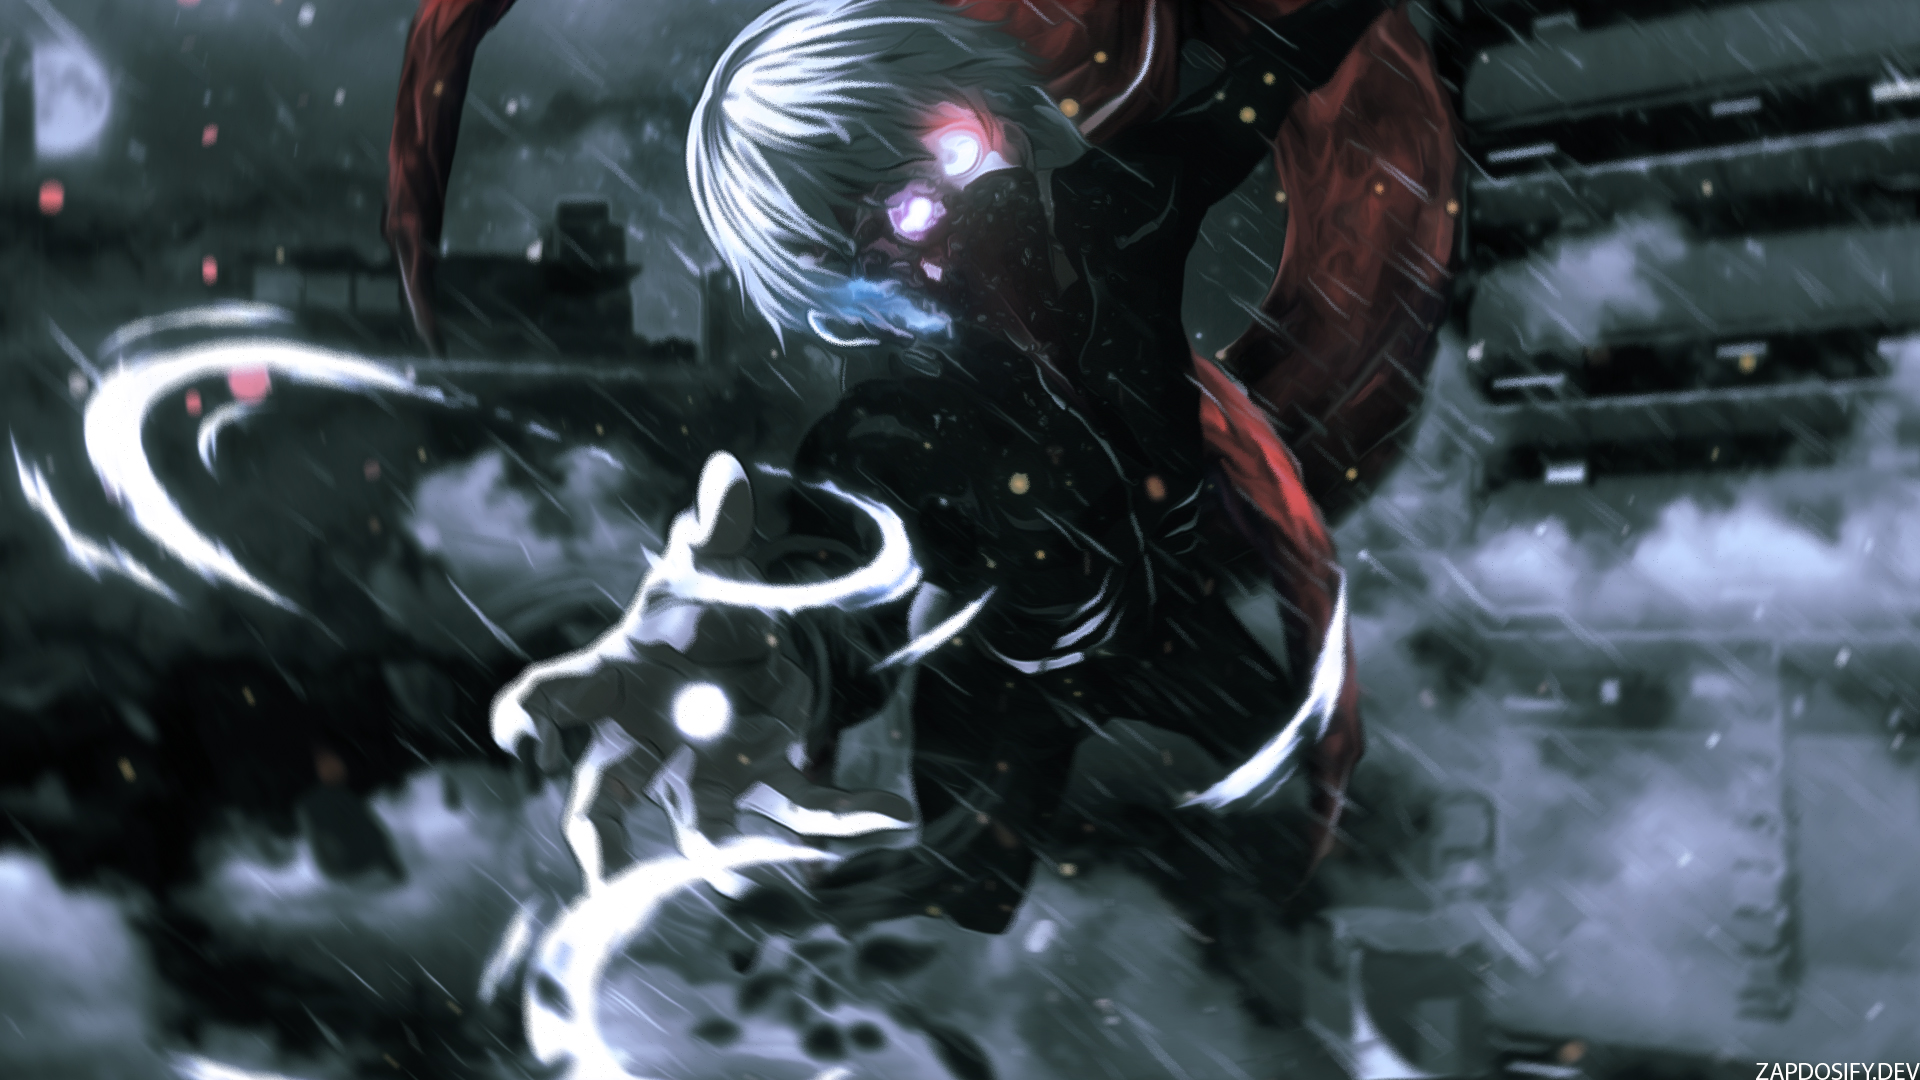 3d Centipede Wallpaper Tokyo Ghoul Full Hd Wallpaper And Background Image